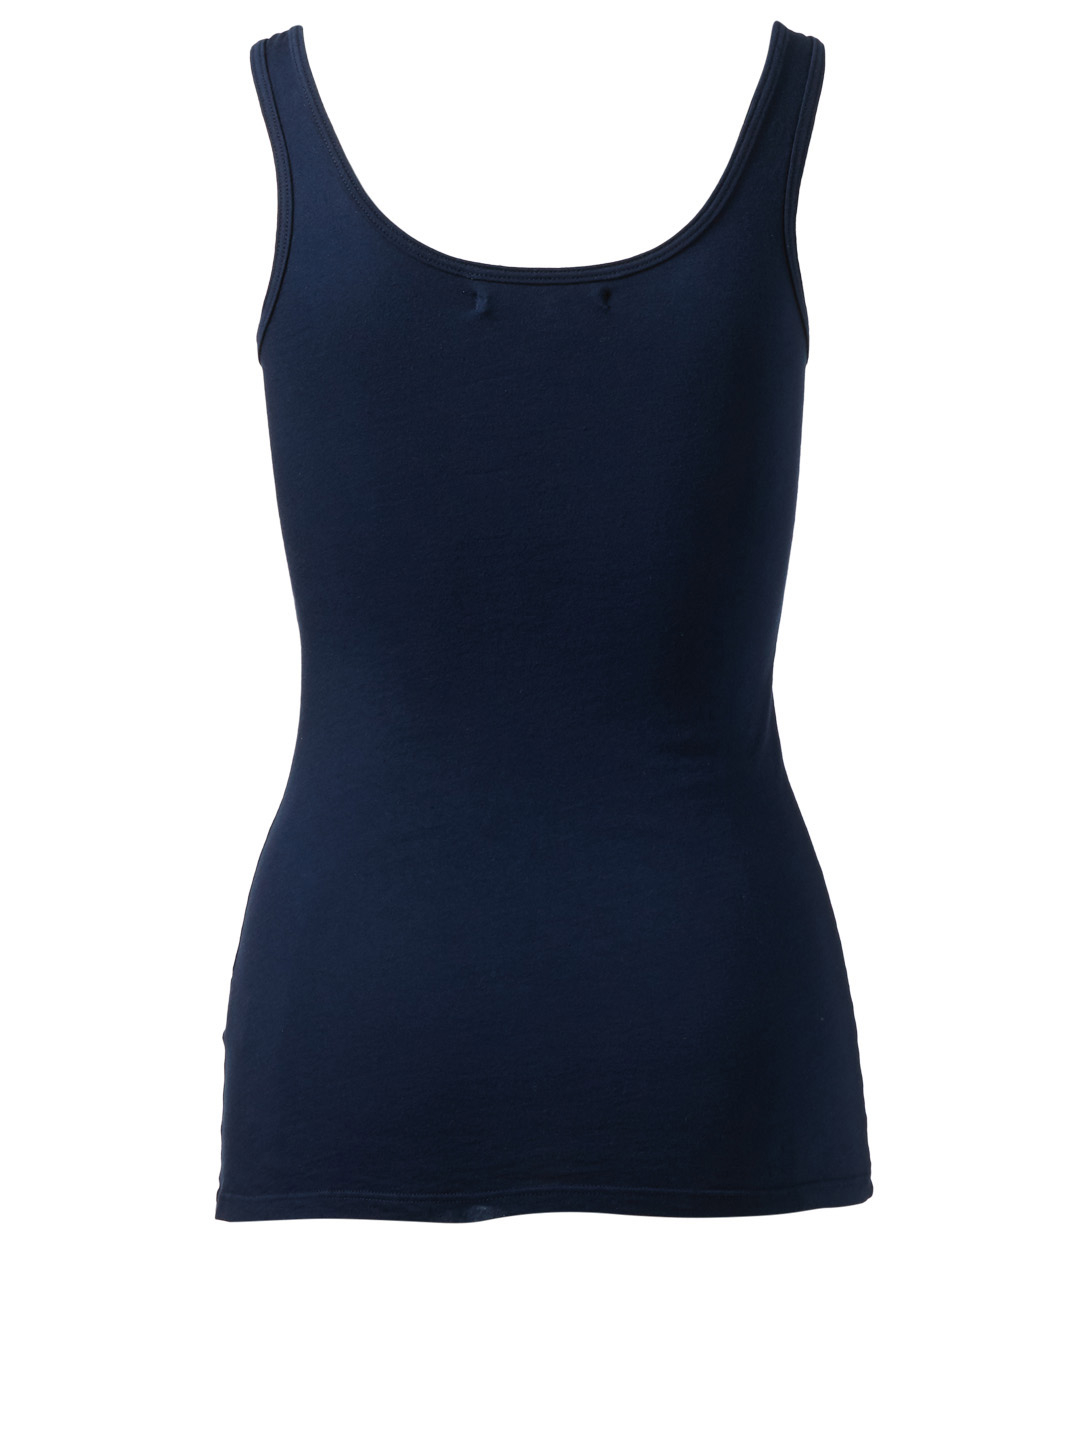 OBAKKI Essential Tank Top H Project Blue